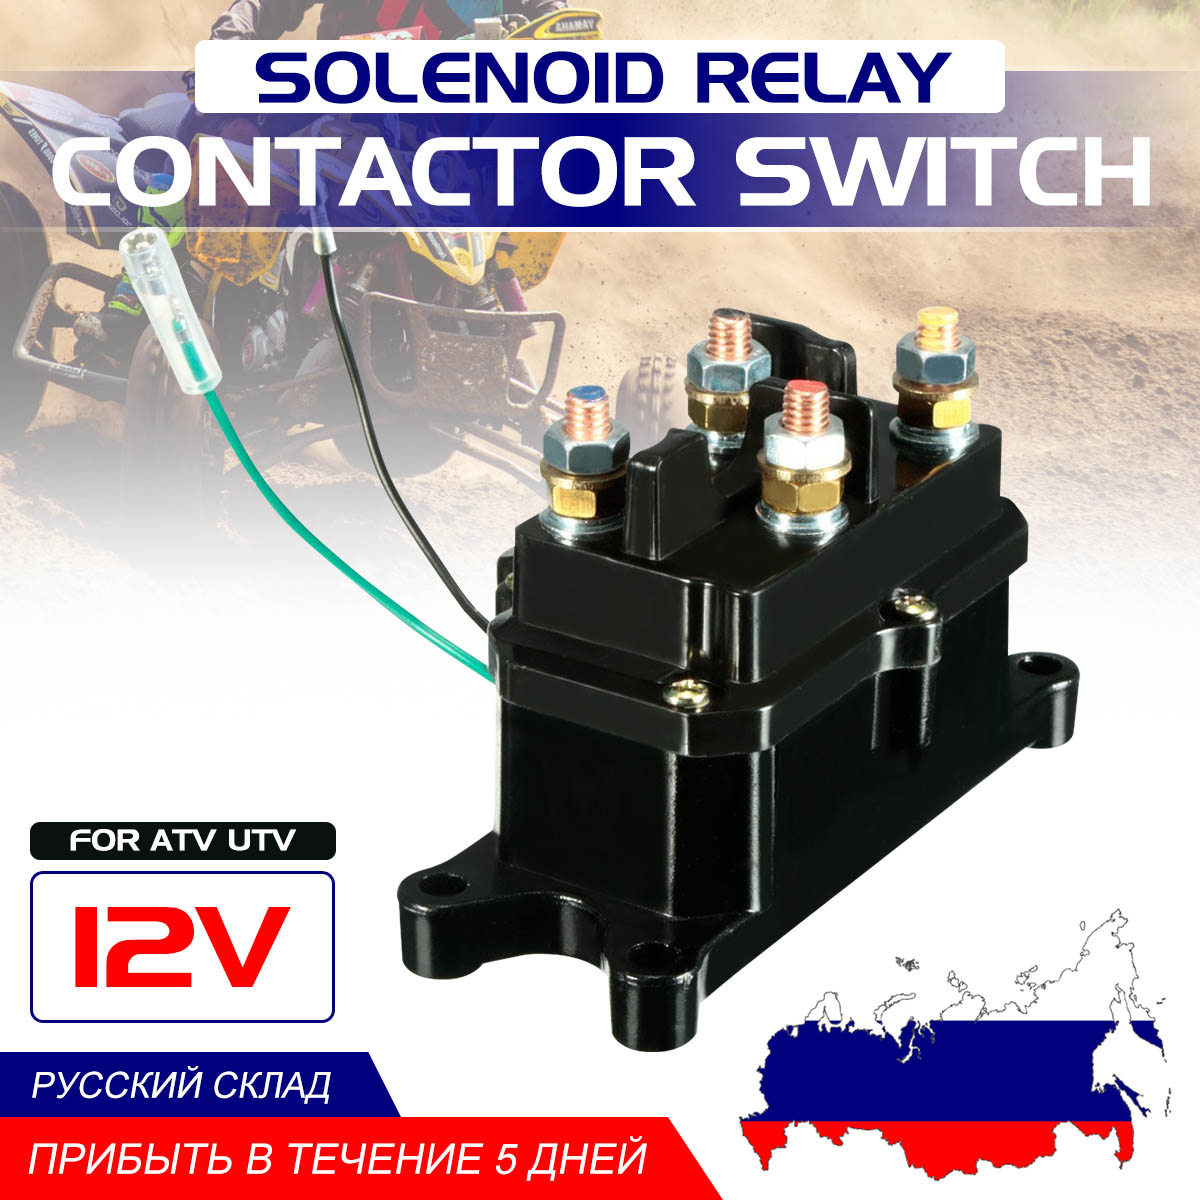 New Universal 12V Solenoid Relay Contactor Winch Rocker Switch Thumb For ATV/UTV(China)